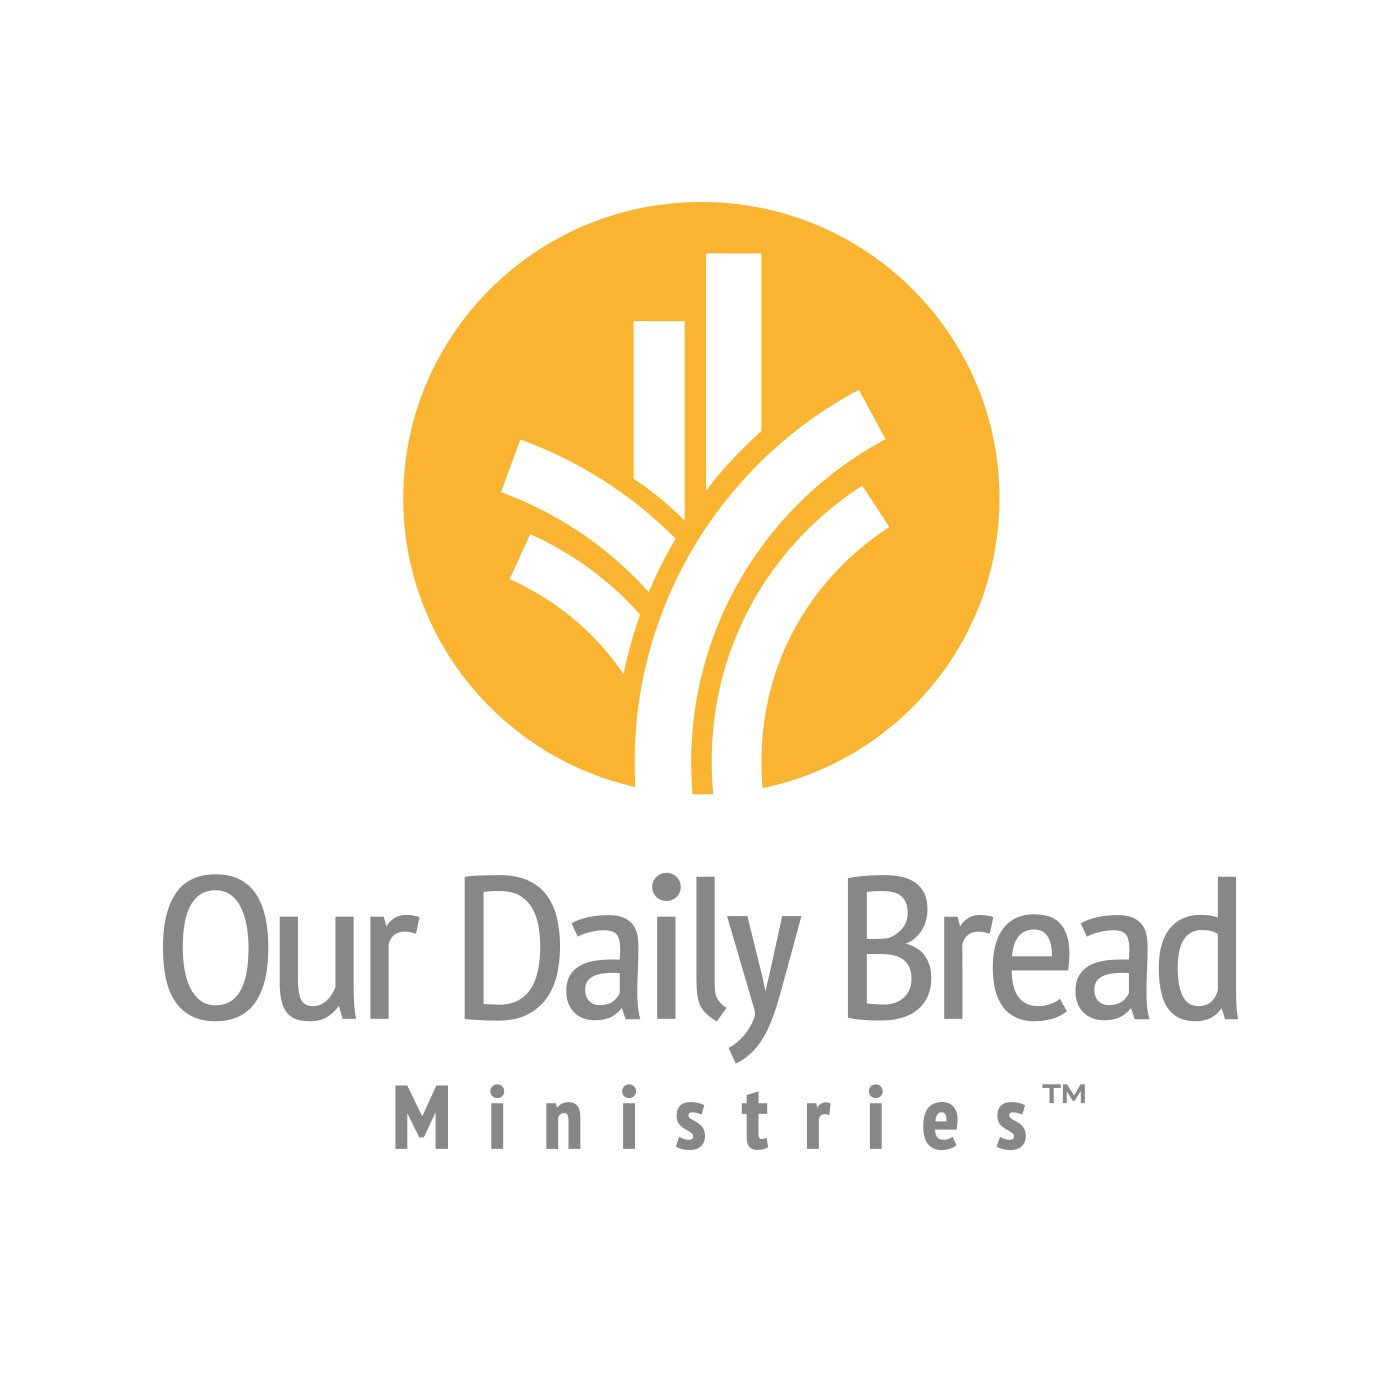 Our Daily Bread 13 June, Our Daily Bread 13 June 2019 – Only A Gypsy Boy